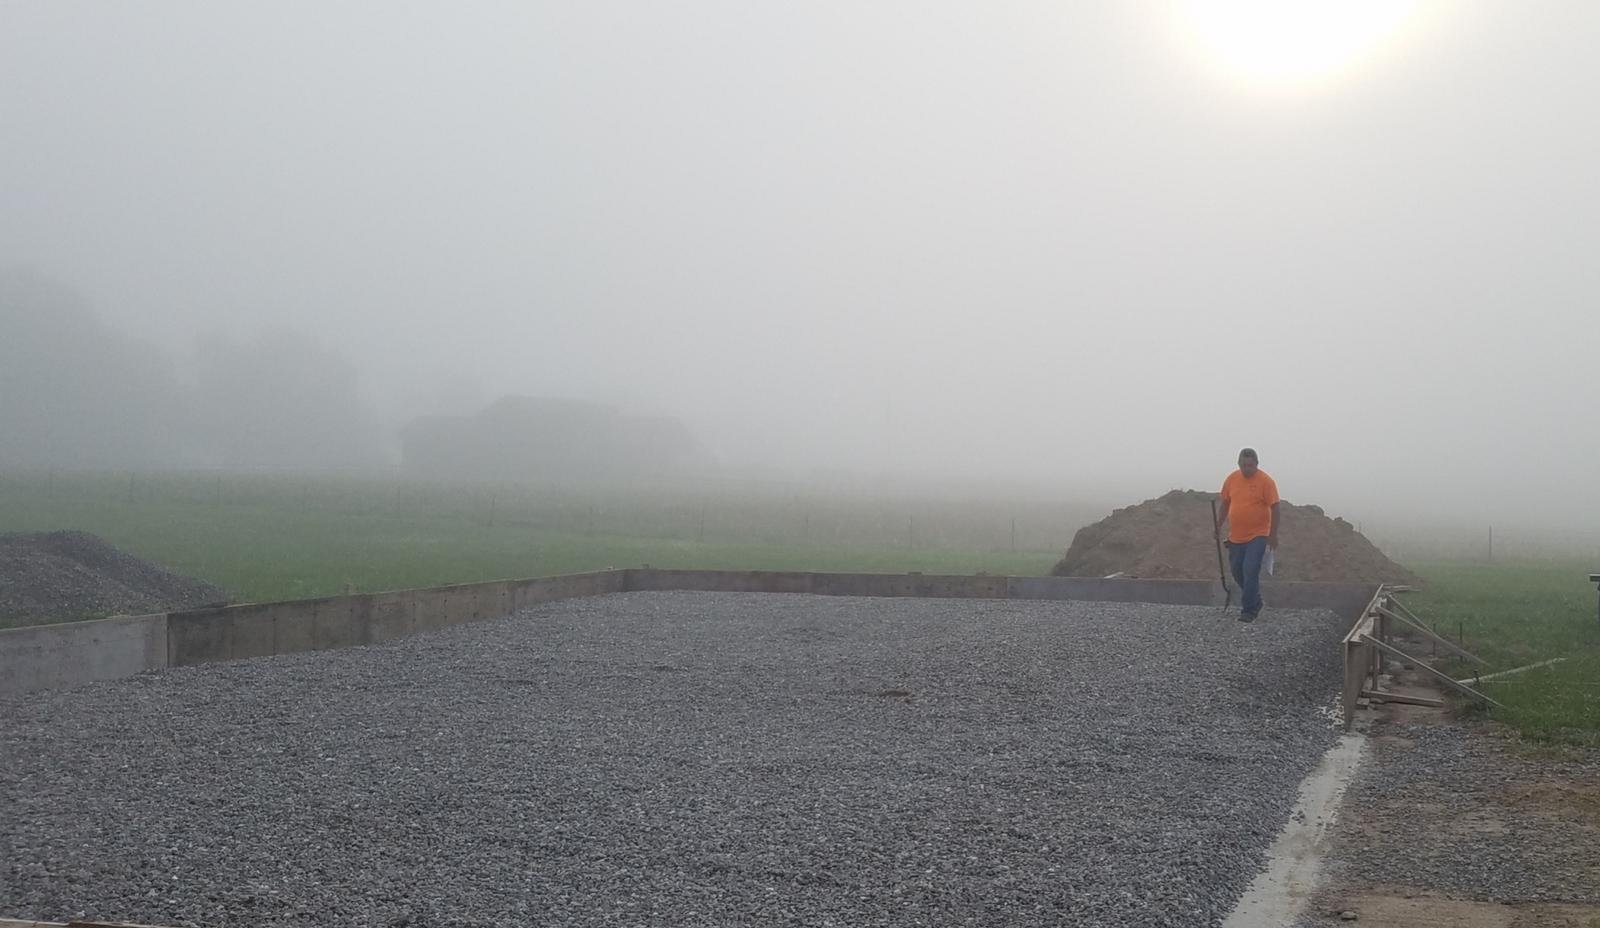 Our work starts before the sun rises. This is Randy at a ground rough-in early in the morning.